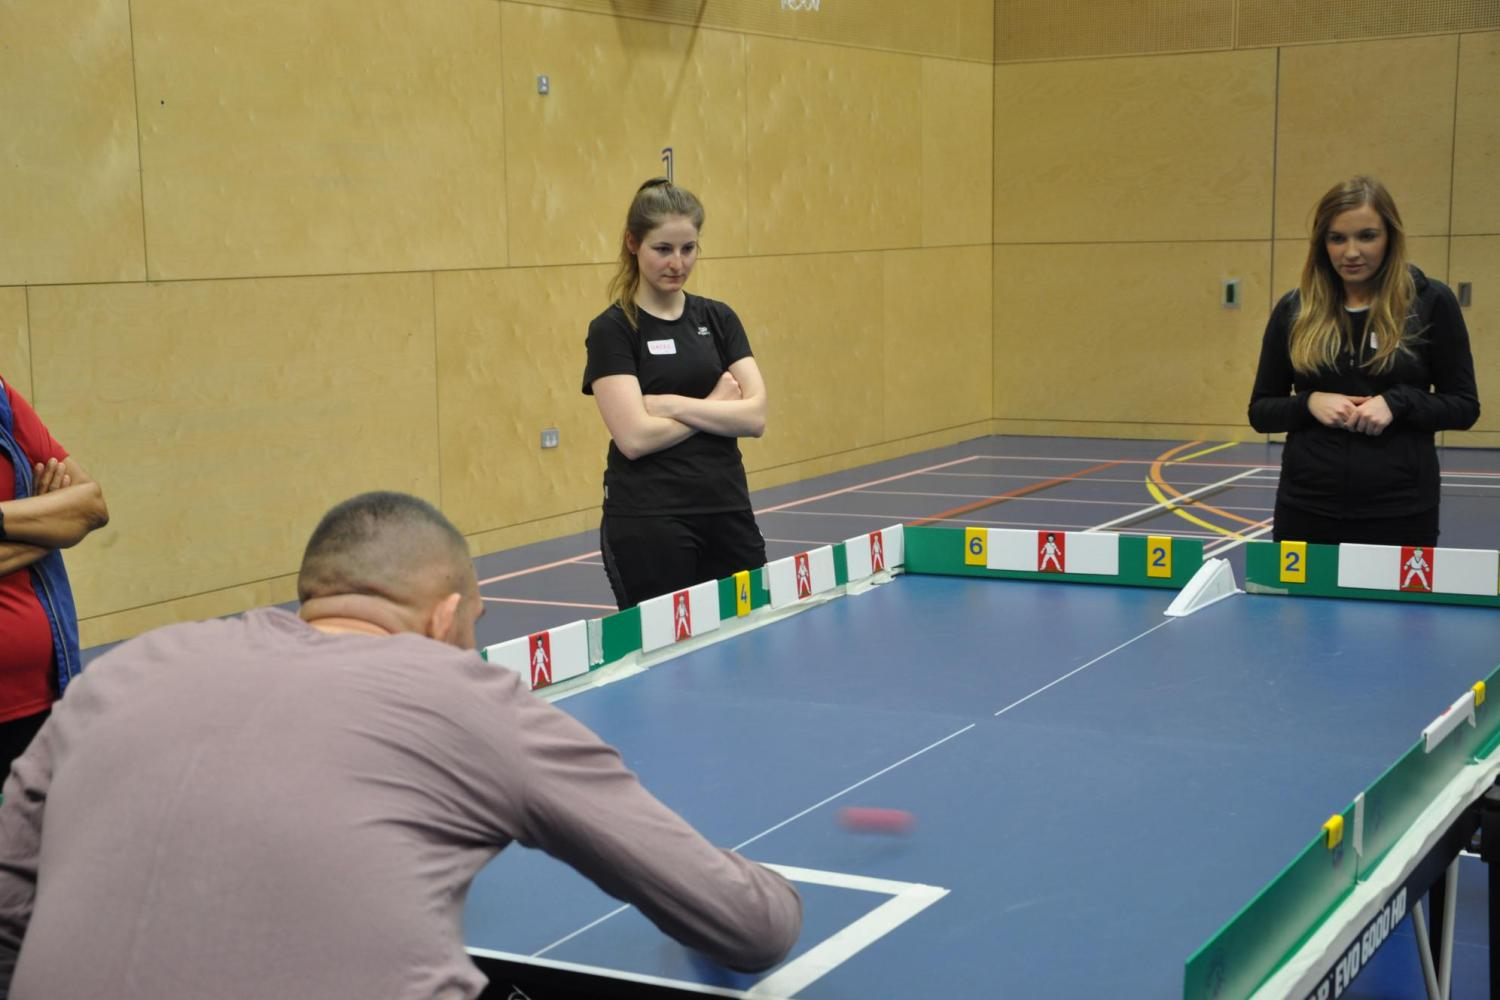 Disability Sports Coach - Adapted Sports Course delegates